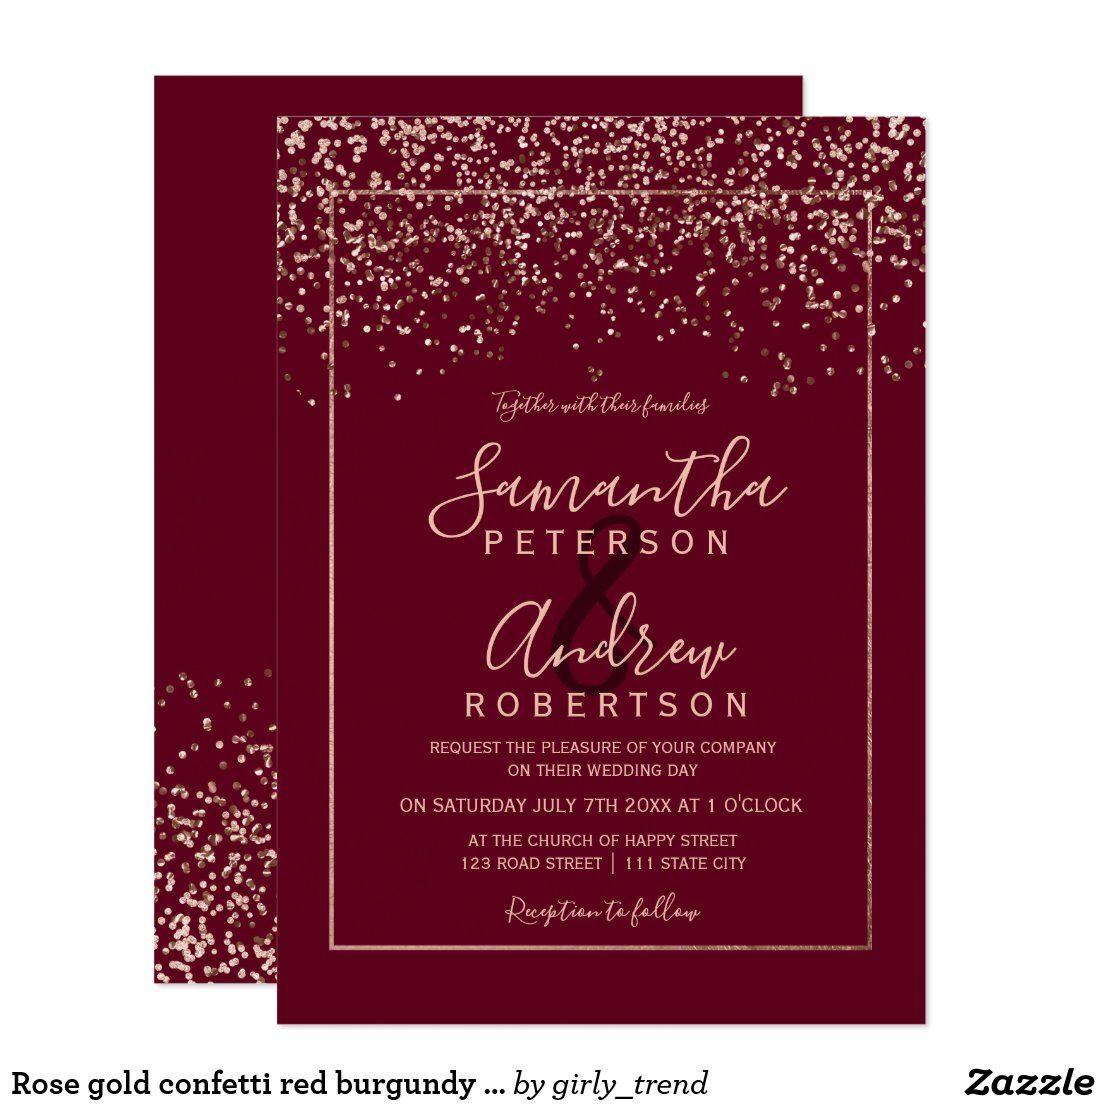 Rose Gold Confetti Red Burgundy Typography Wedding Invitation Zazzle Com In 2020 Typography Wedding Invitations Rose Gold Confetti Wedding Invitations